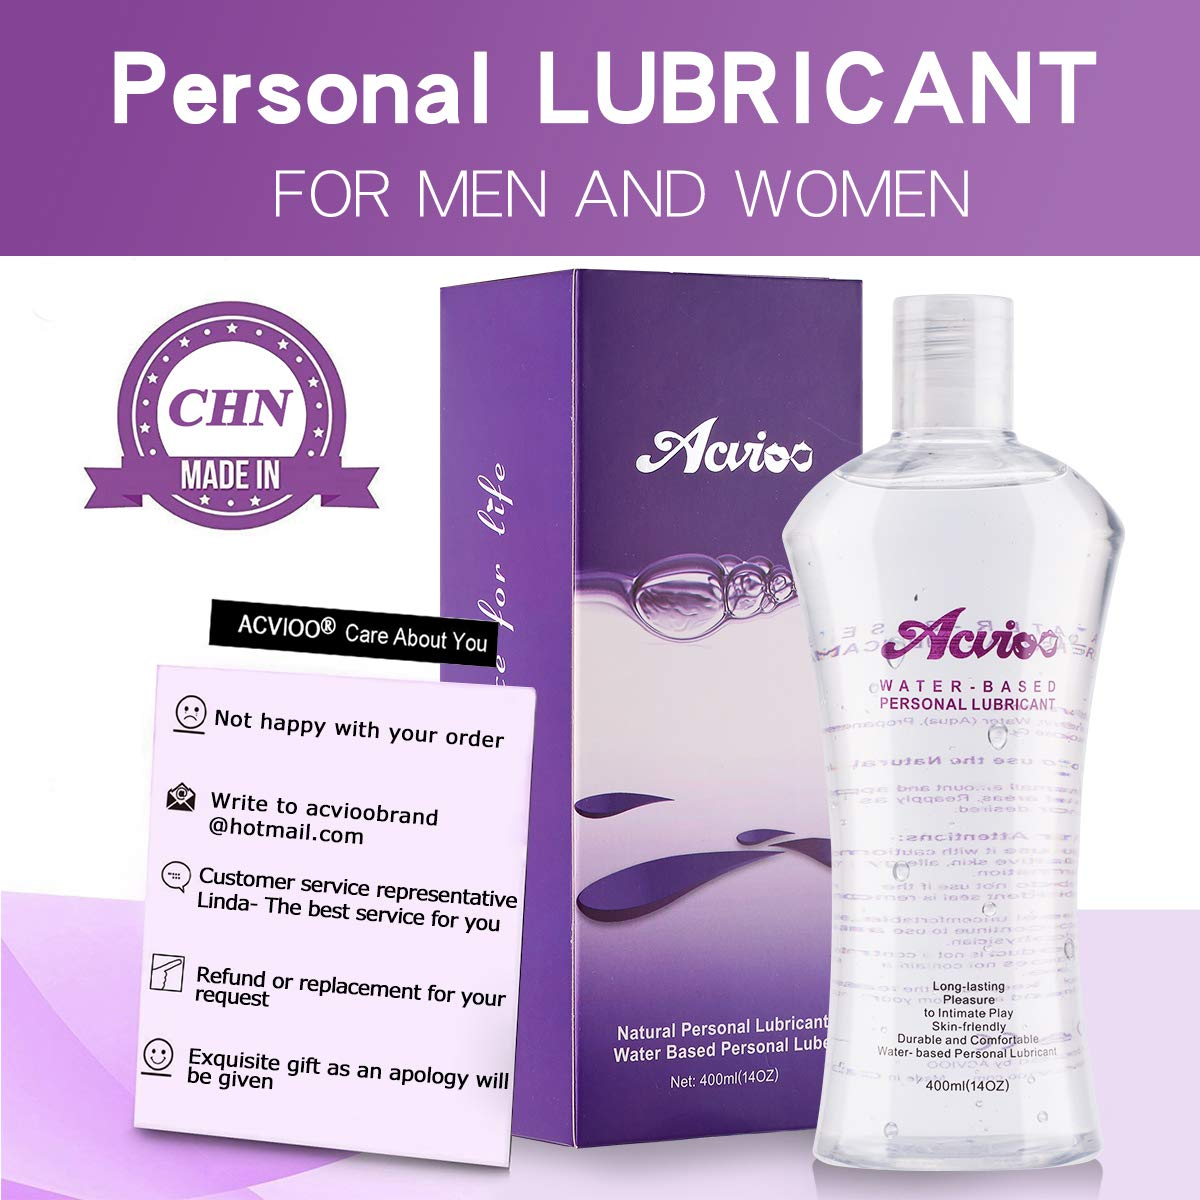 ACVIOO Water-Based Personal Lubricant, Super Slick Long Lasting, Natural Wet Lube for Women, Lovers &Couples(14OZ, Discreet Package)